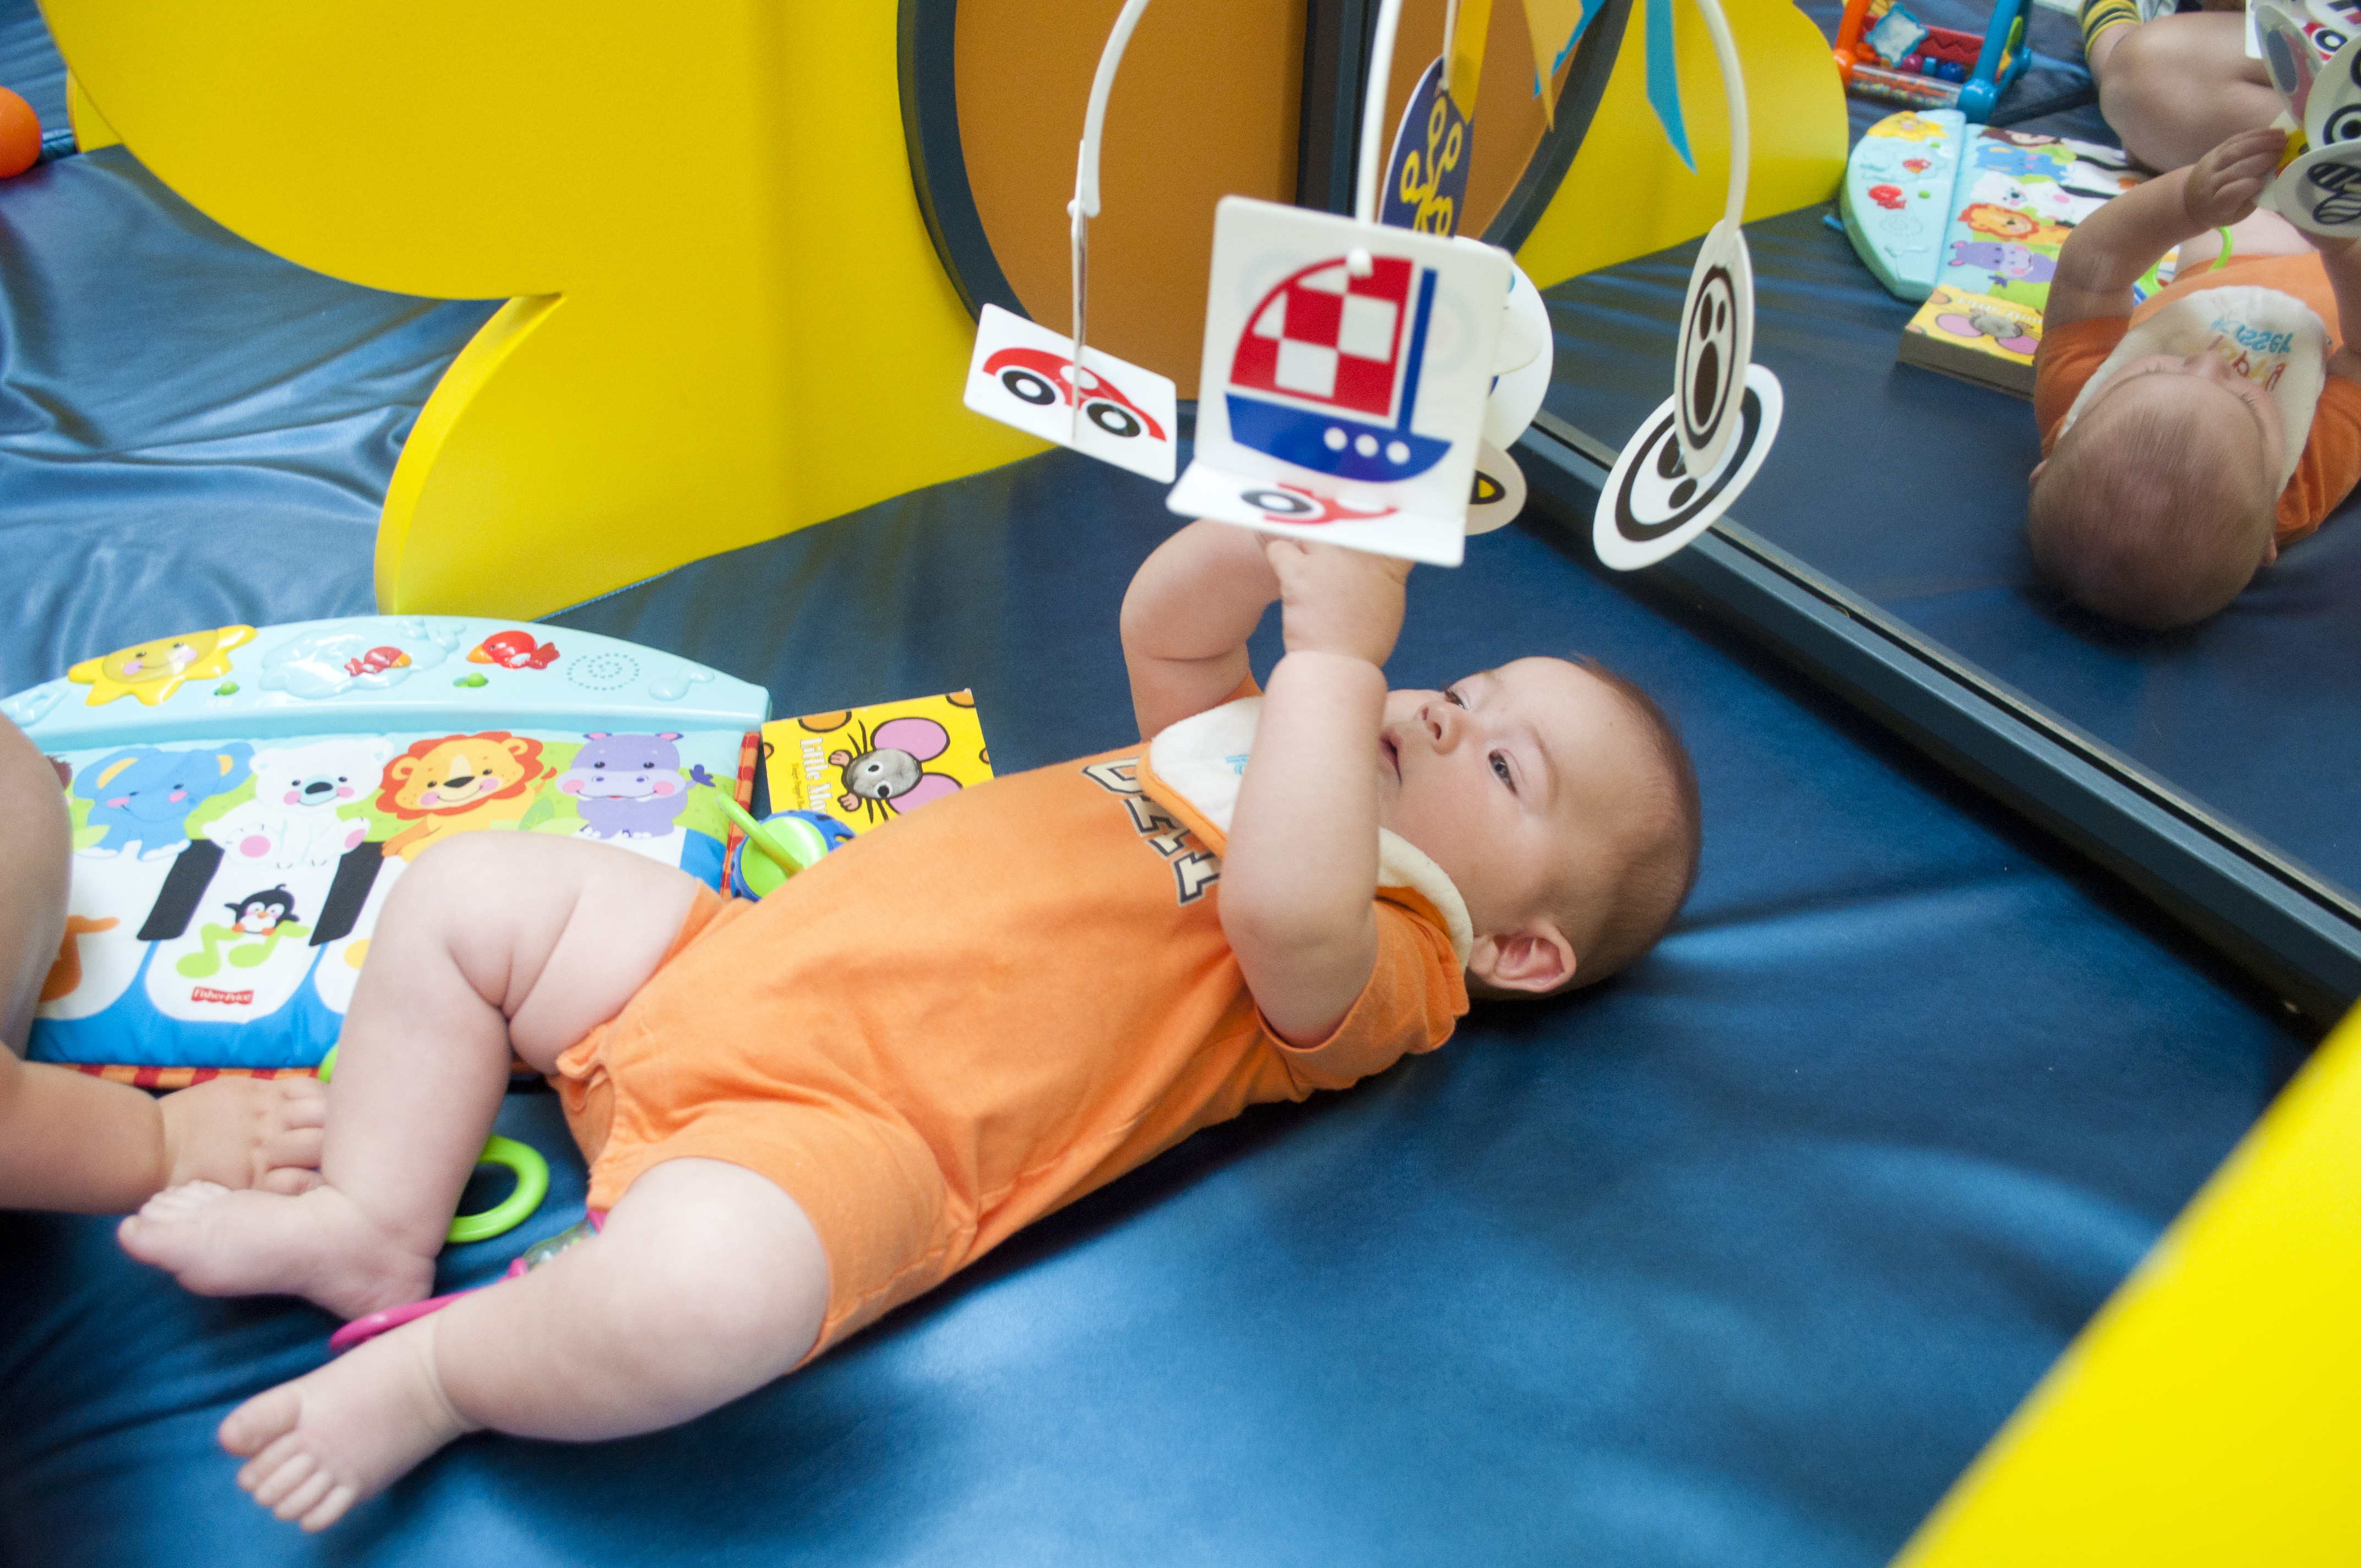 An infant plays with a mobile on a blue mat in the infant area